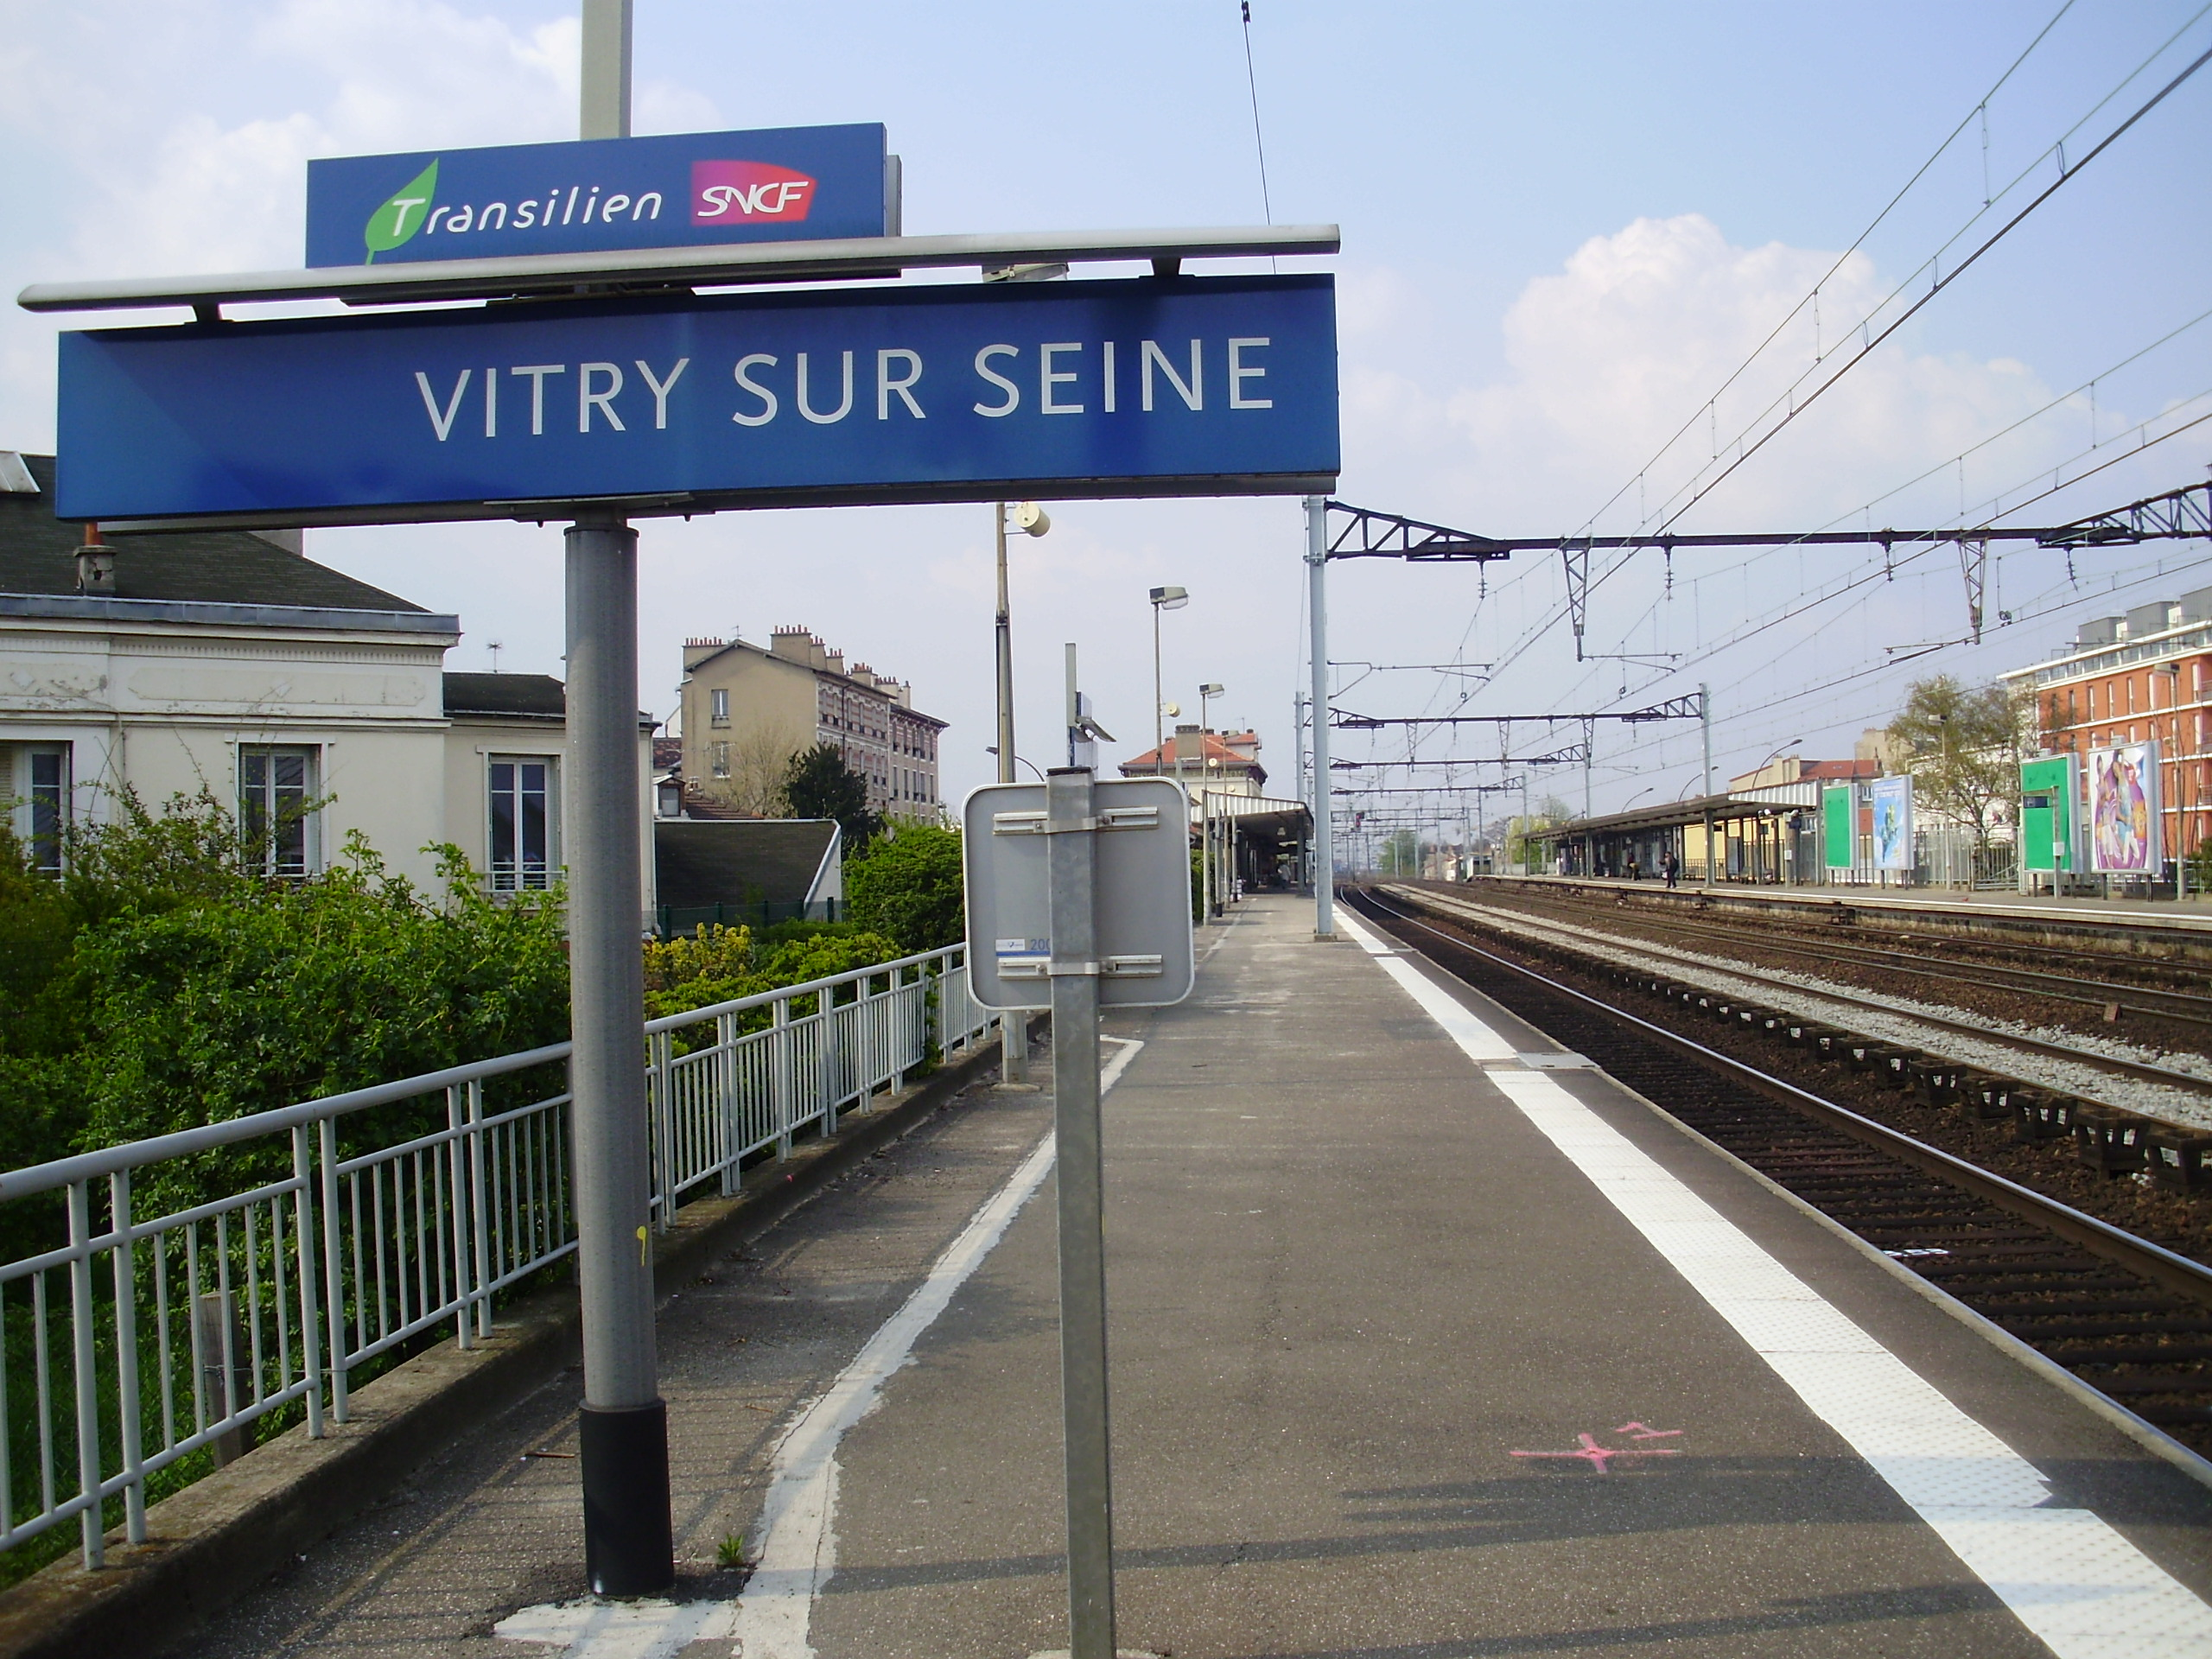 Vitry sur seine for Piscine d ivry sur seine